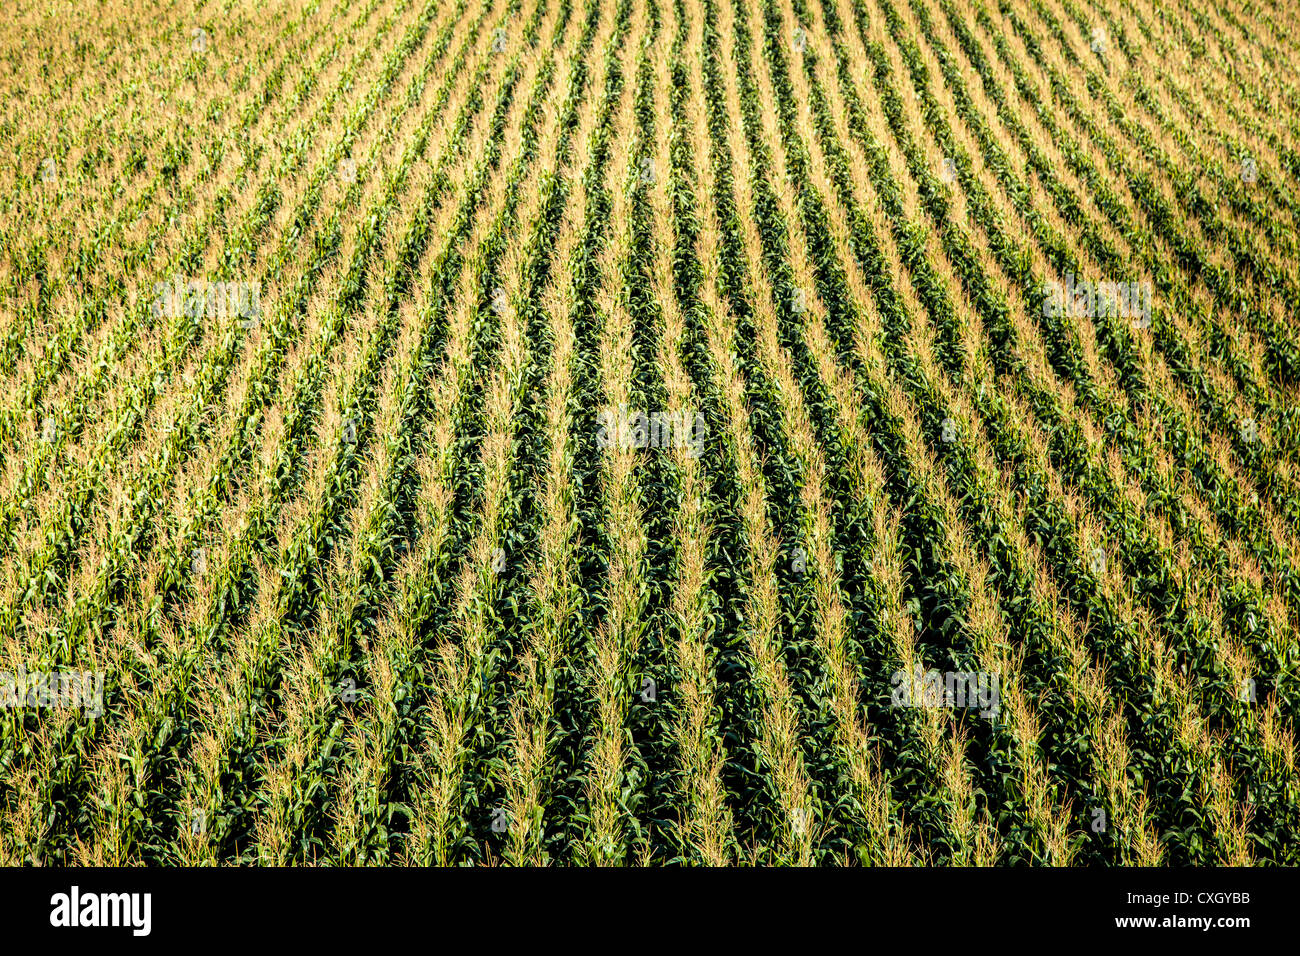 Corn field, structure, seen from above. - Stock Image